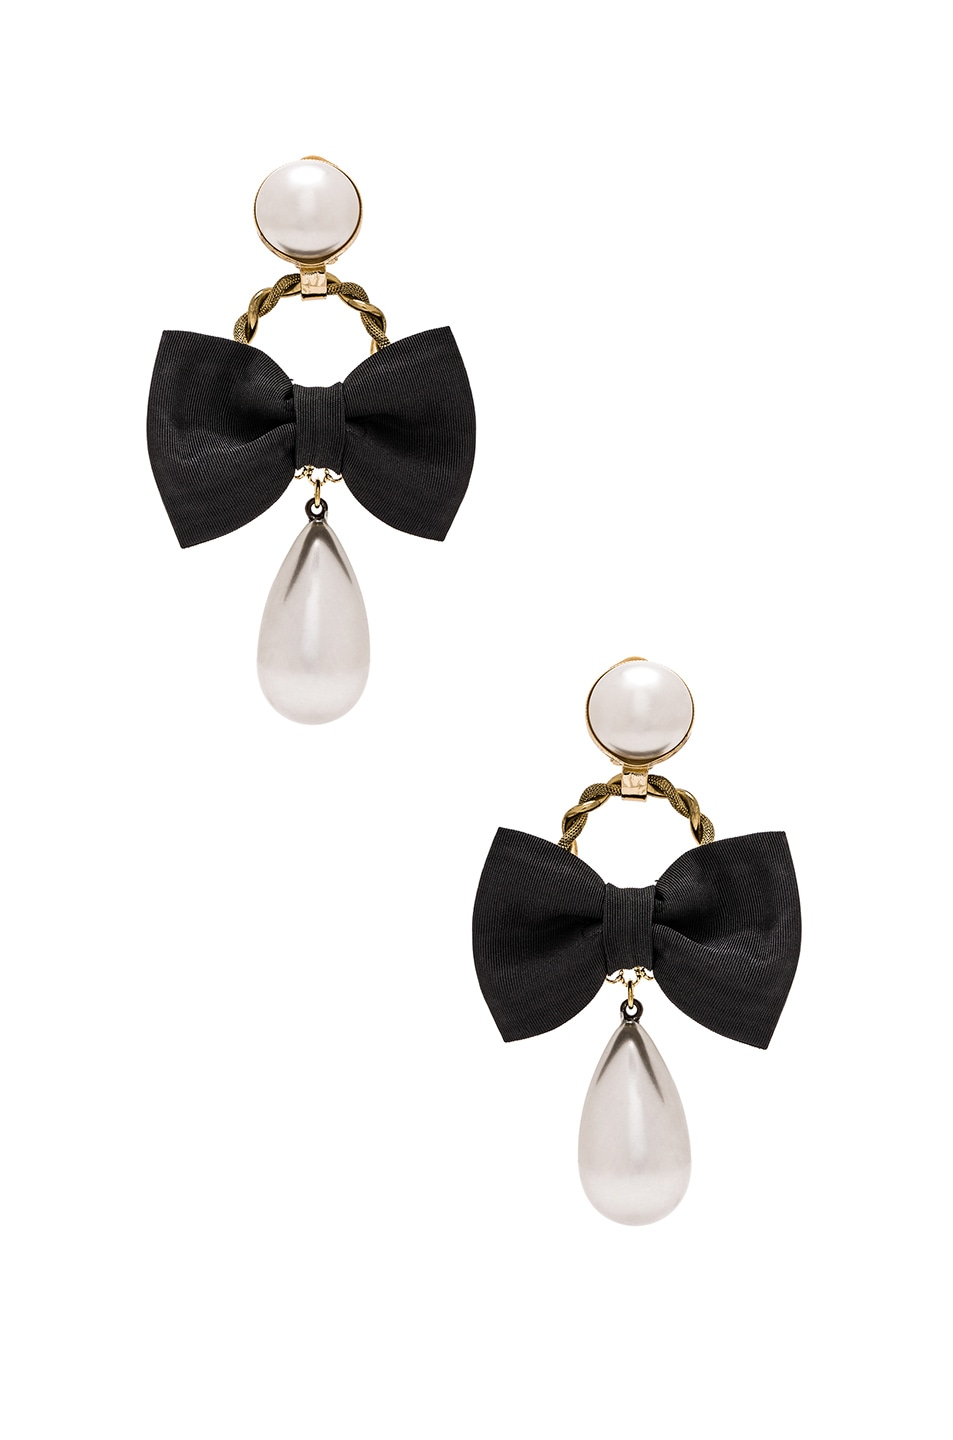 Image 1 Of Alessandra Rich Bow & Pearl Earrings In Black